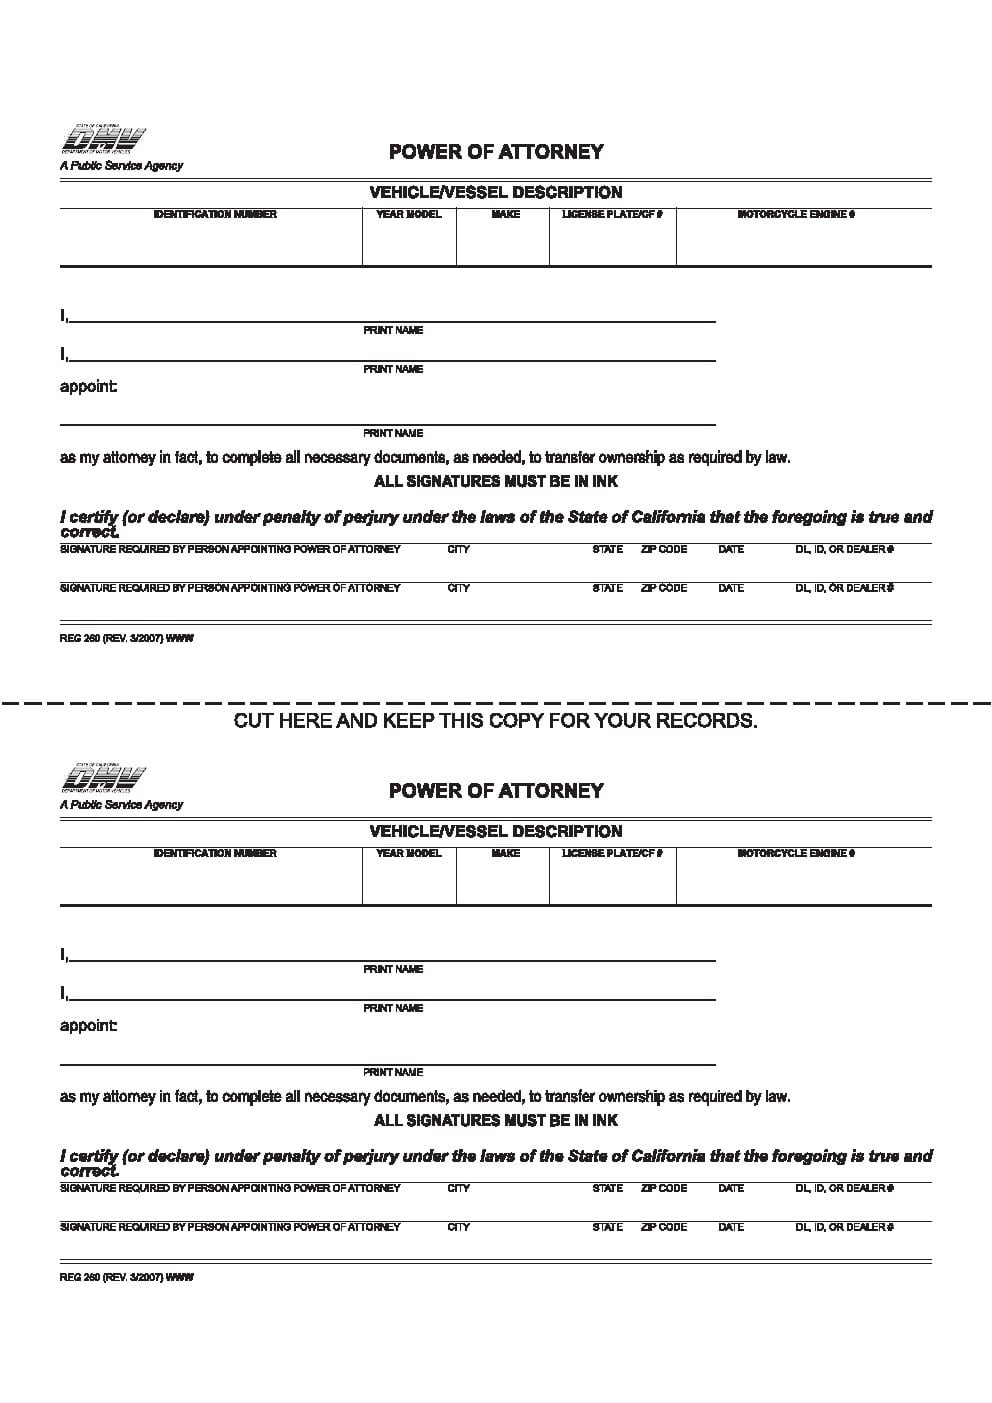 Free California Vehicle Vessel Power Of Attorney Form